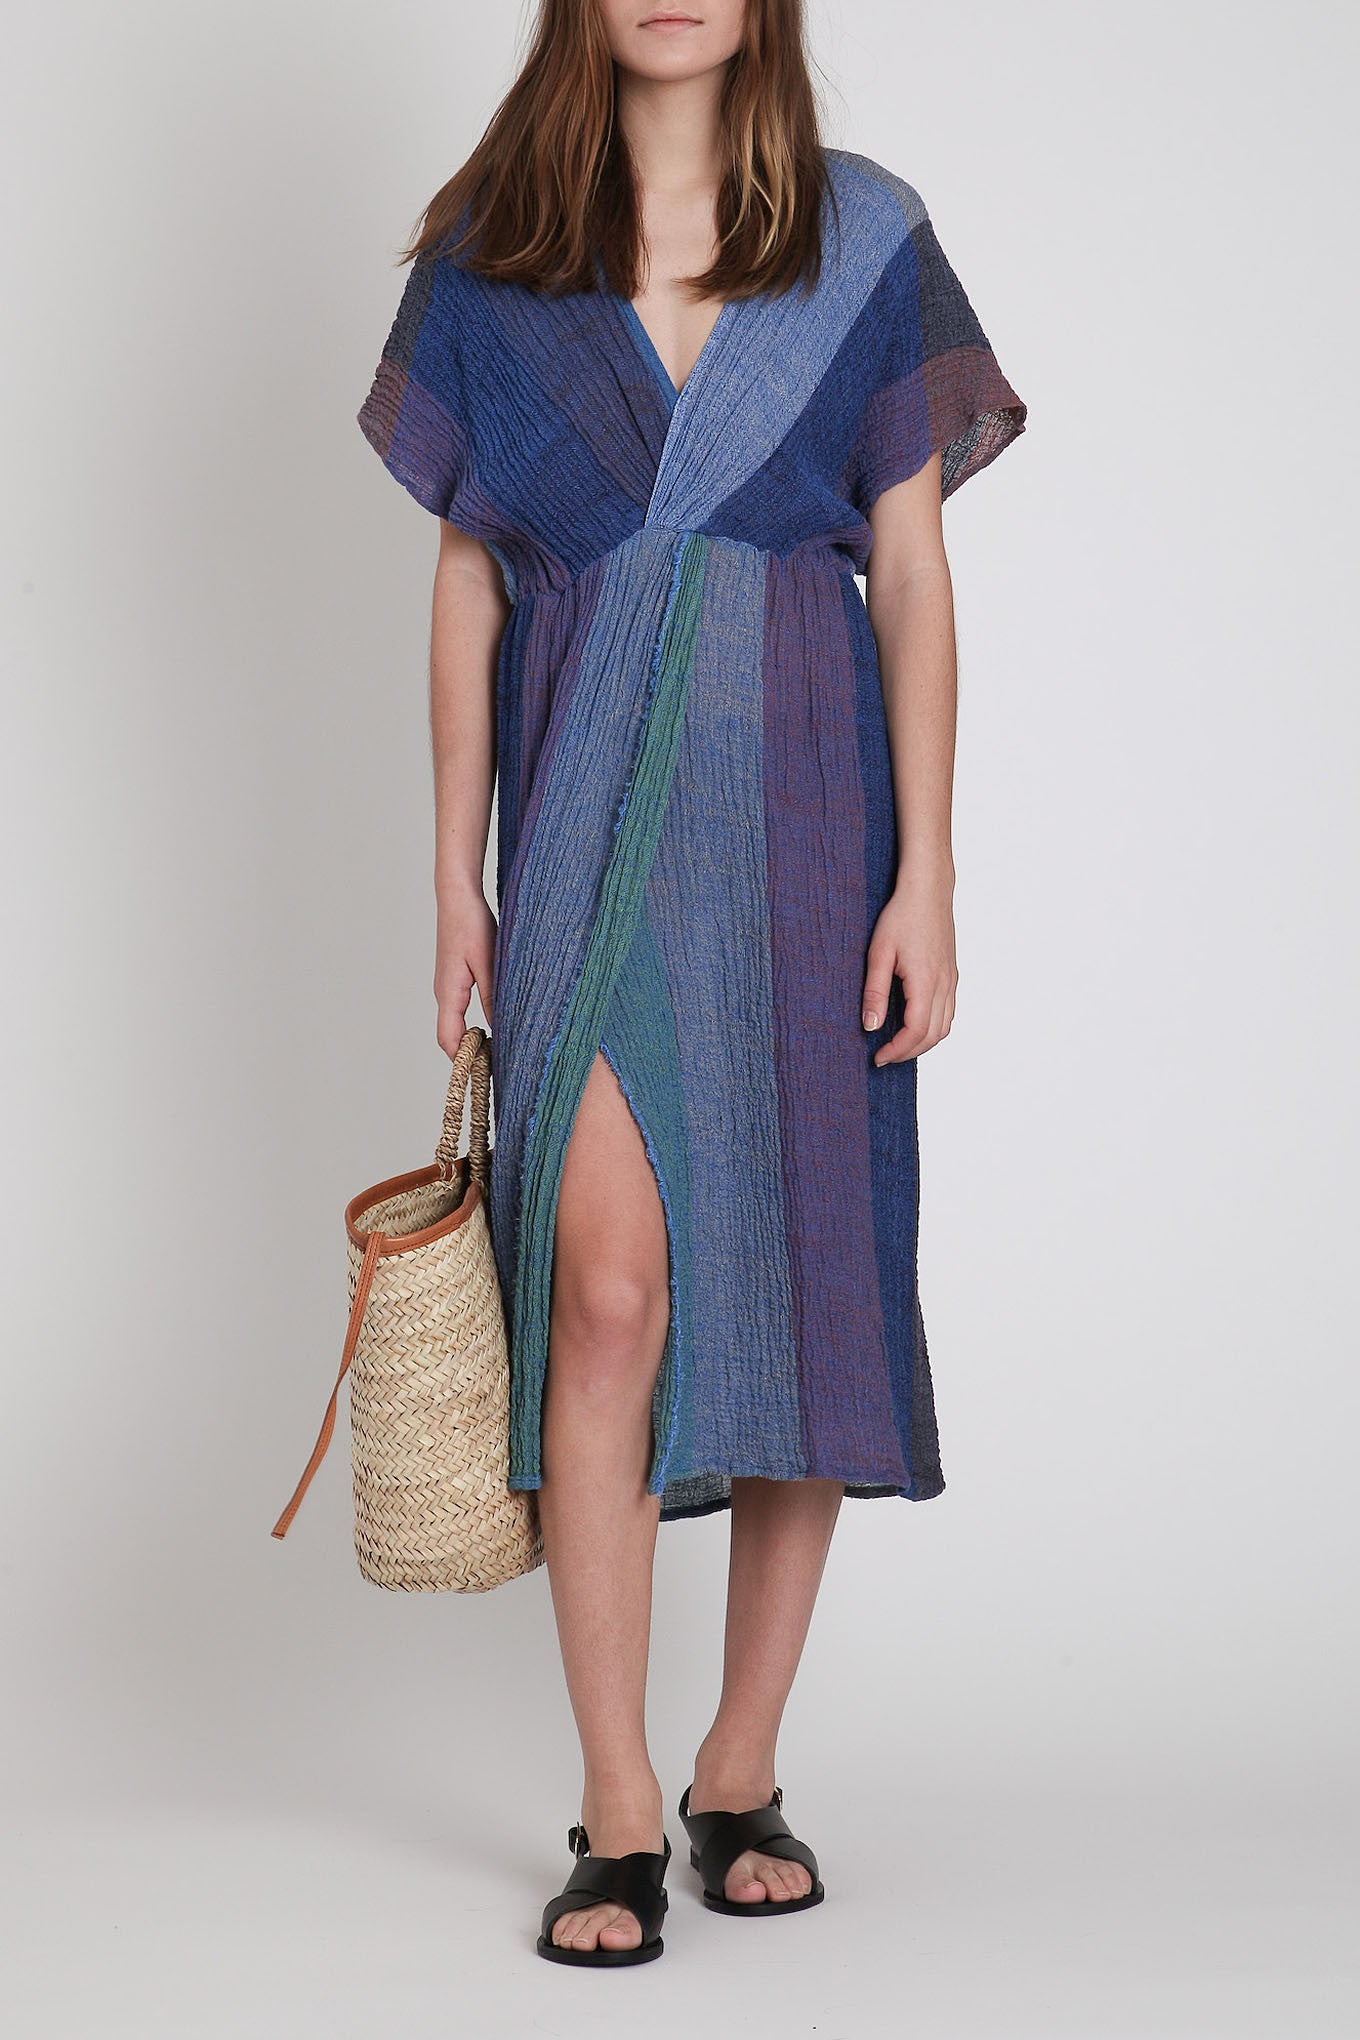 Masscob / Lavender Dress